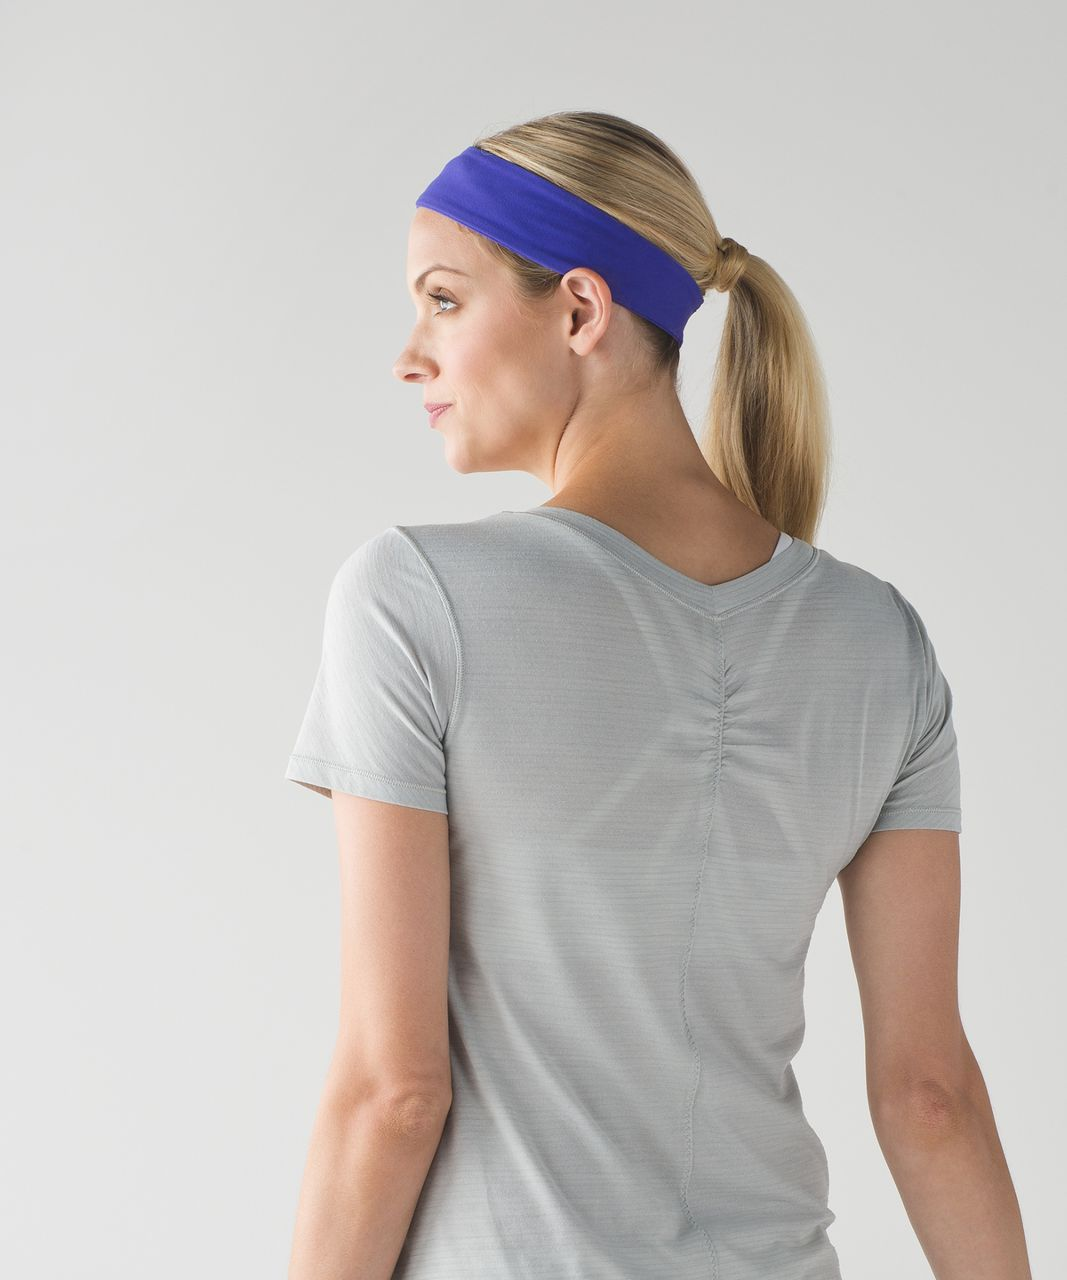 Lululemon Fly Away Tamer Headband II - Super Purple